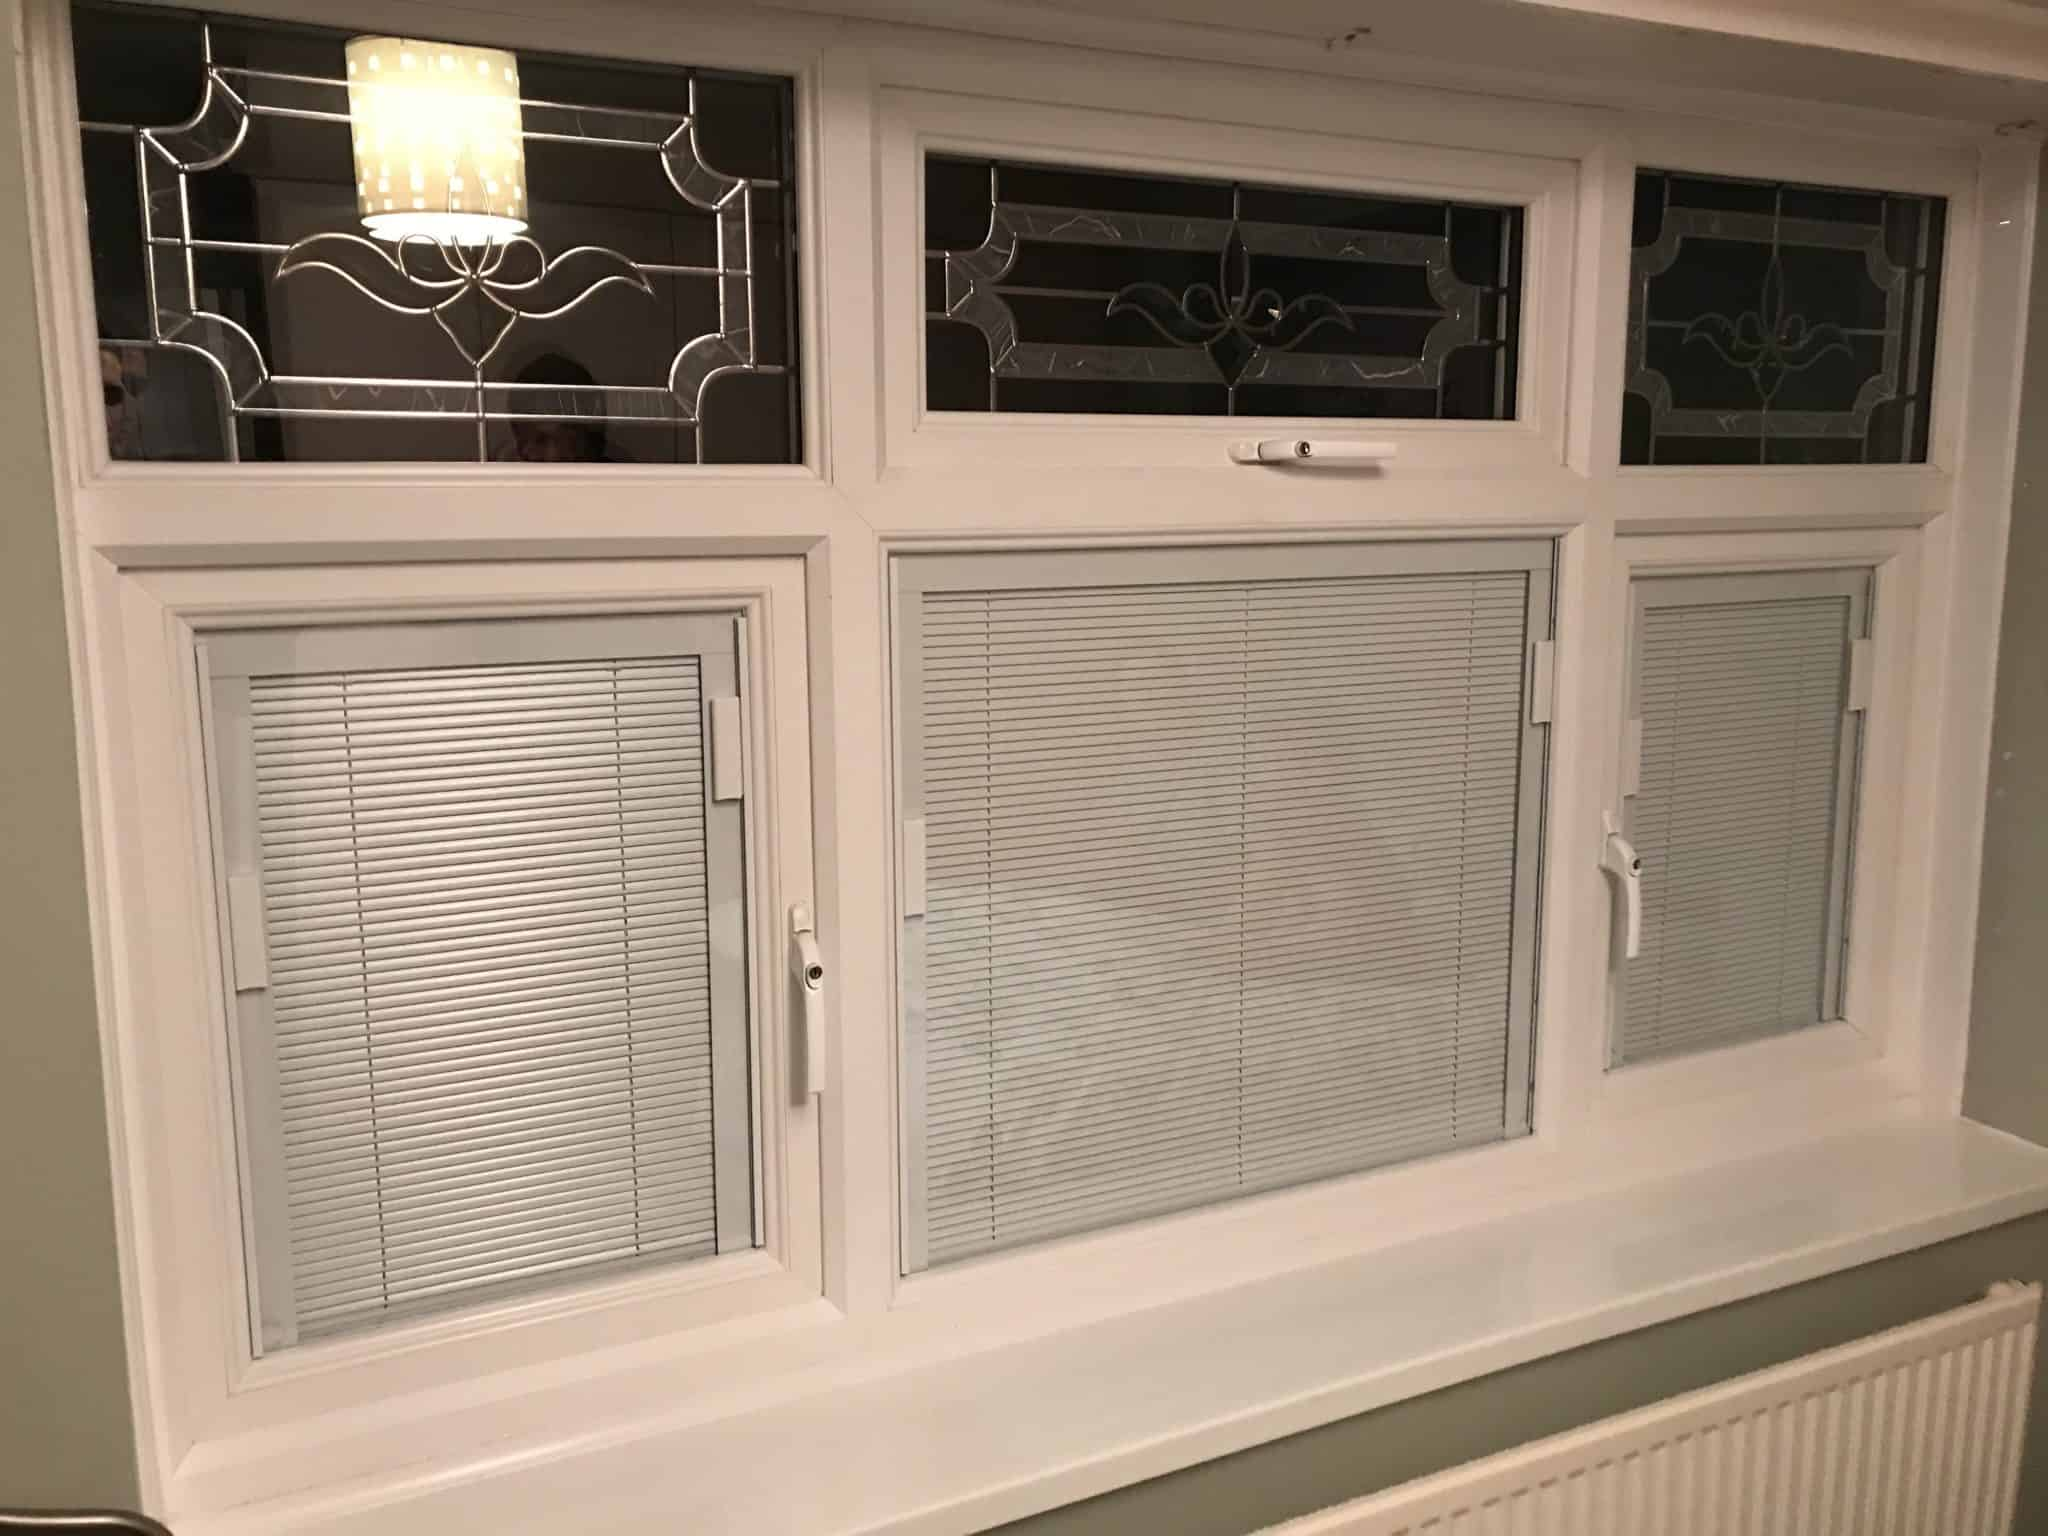 integral-blinds-for-bay-windows